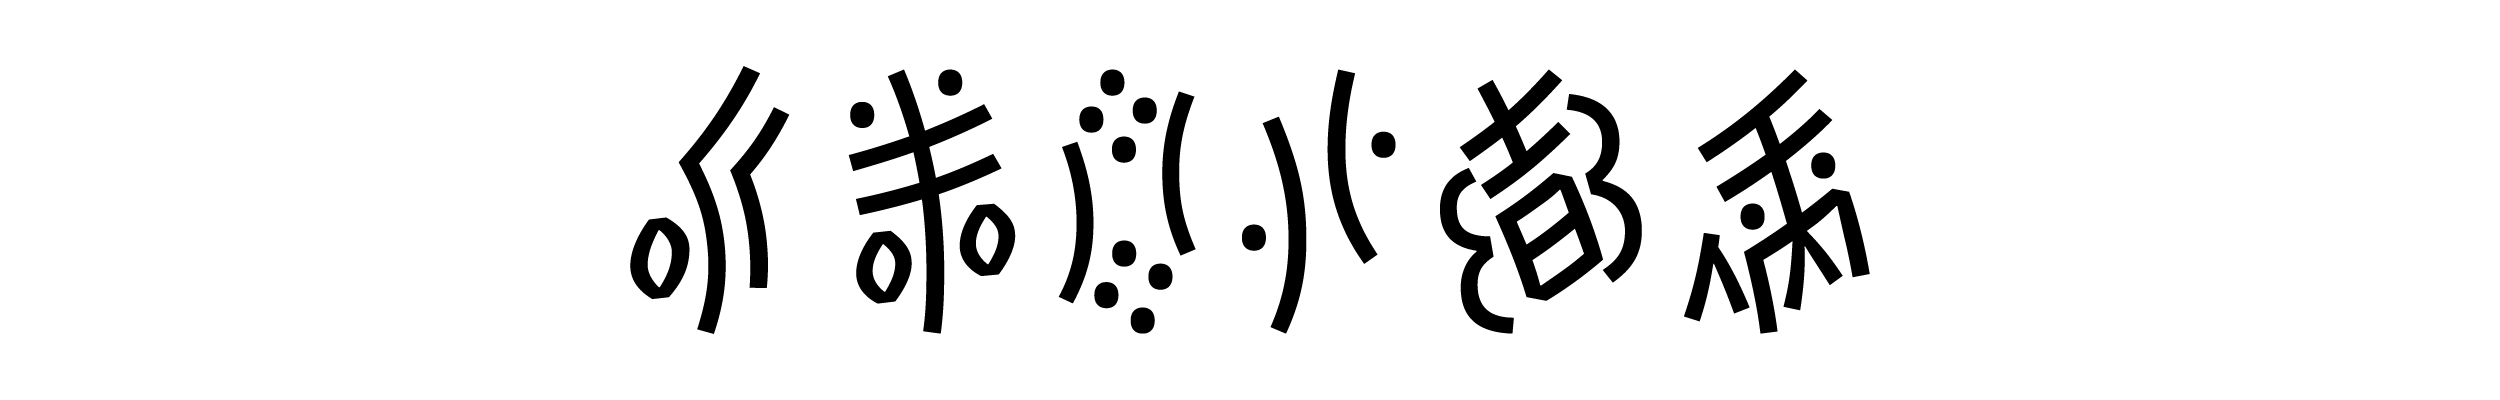 "Name ""Alphabettes"" transcribed into Nüshu's most common dialects phonemes, read from right to left: [ew] [lou] [fa] [ba] [tu] [su]"